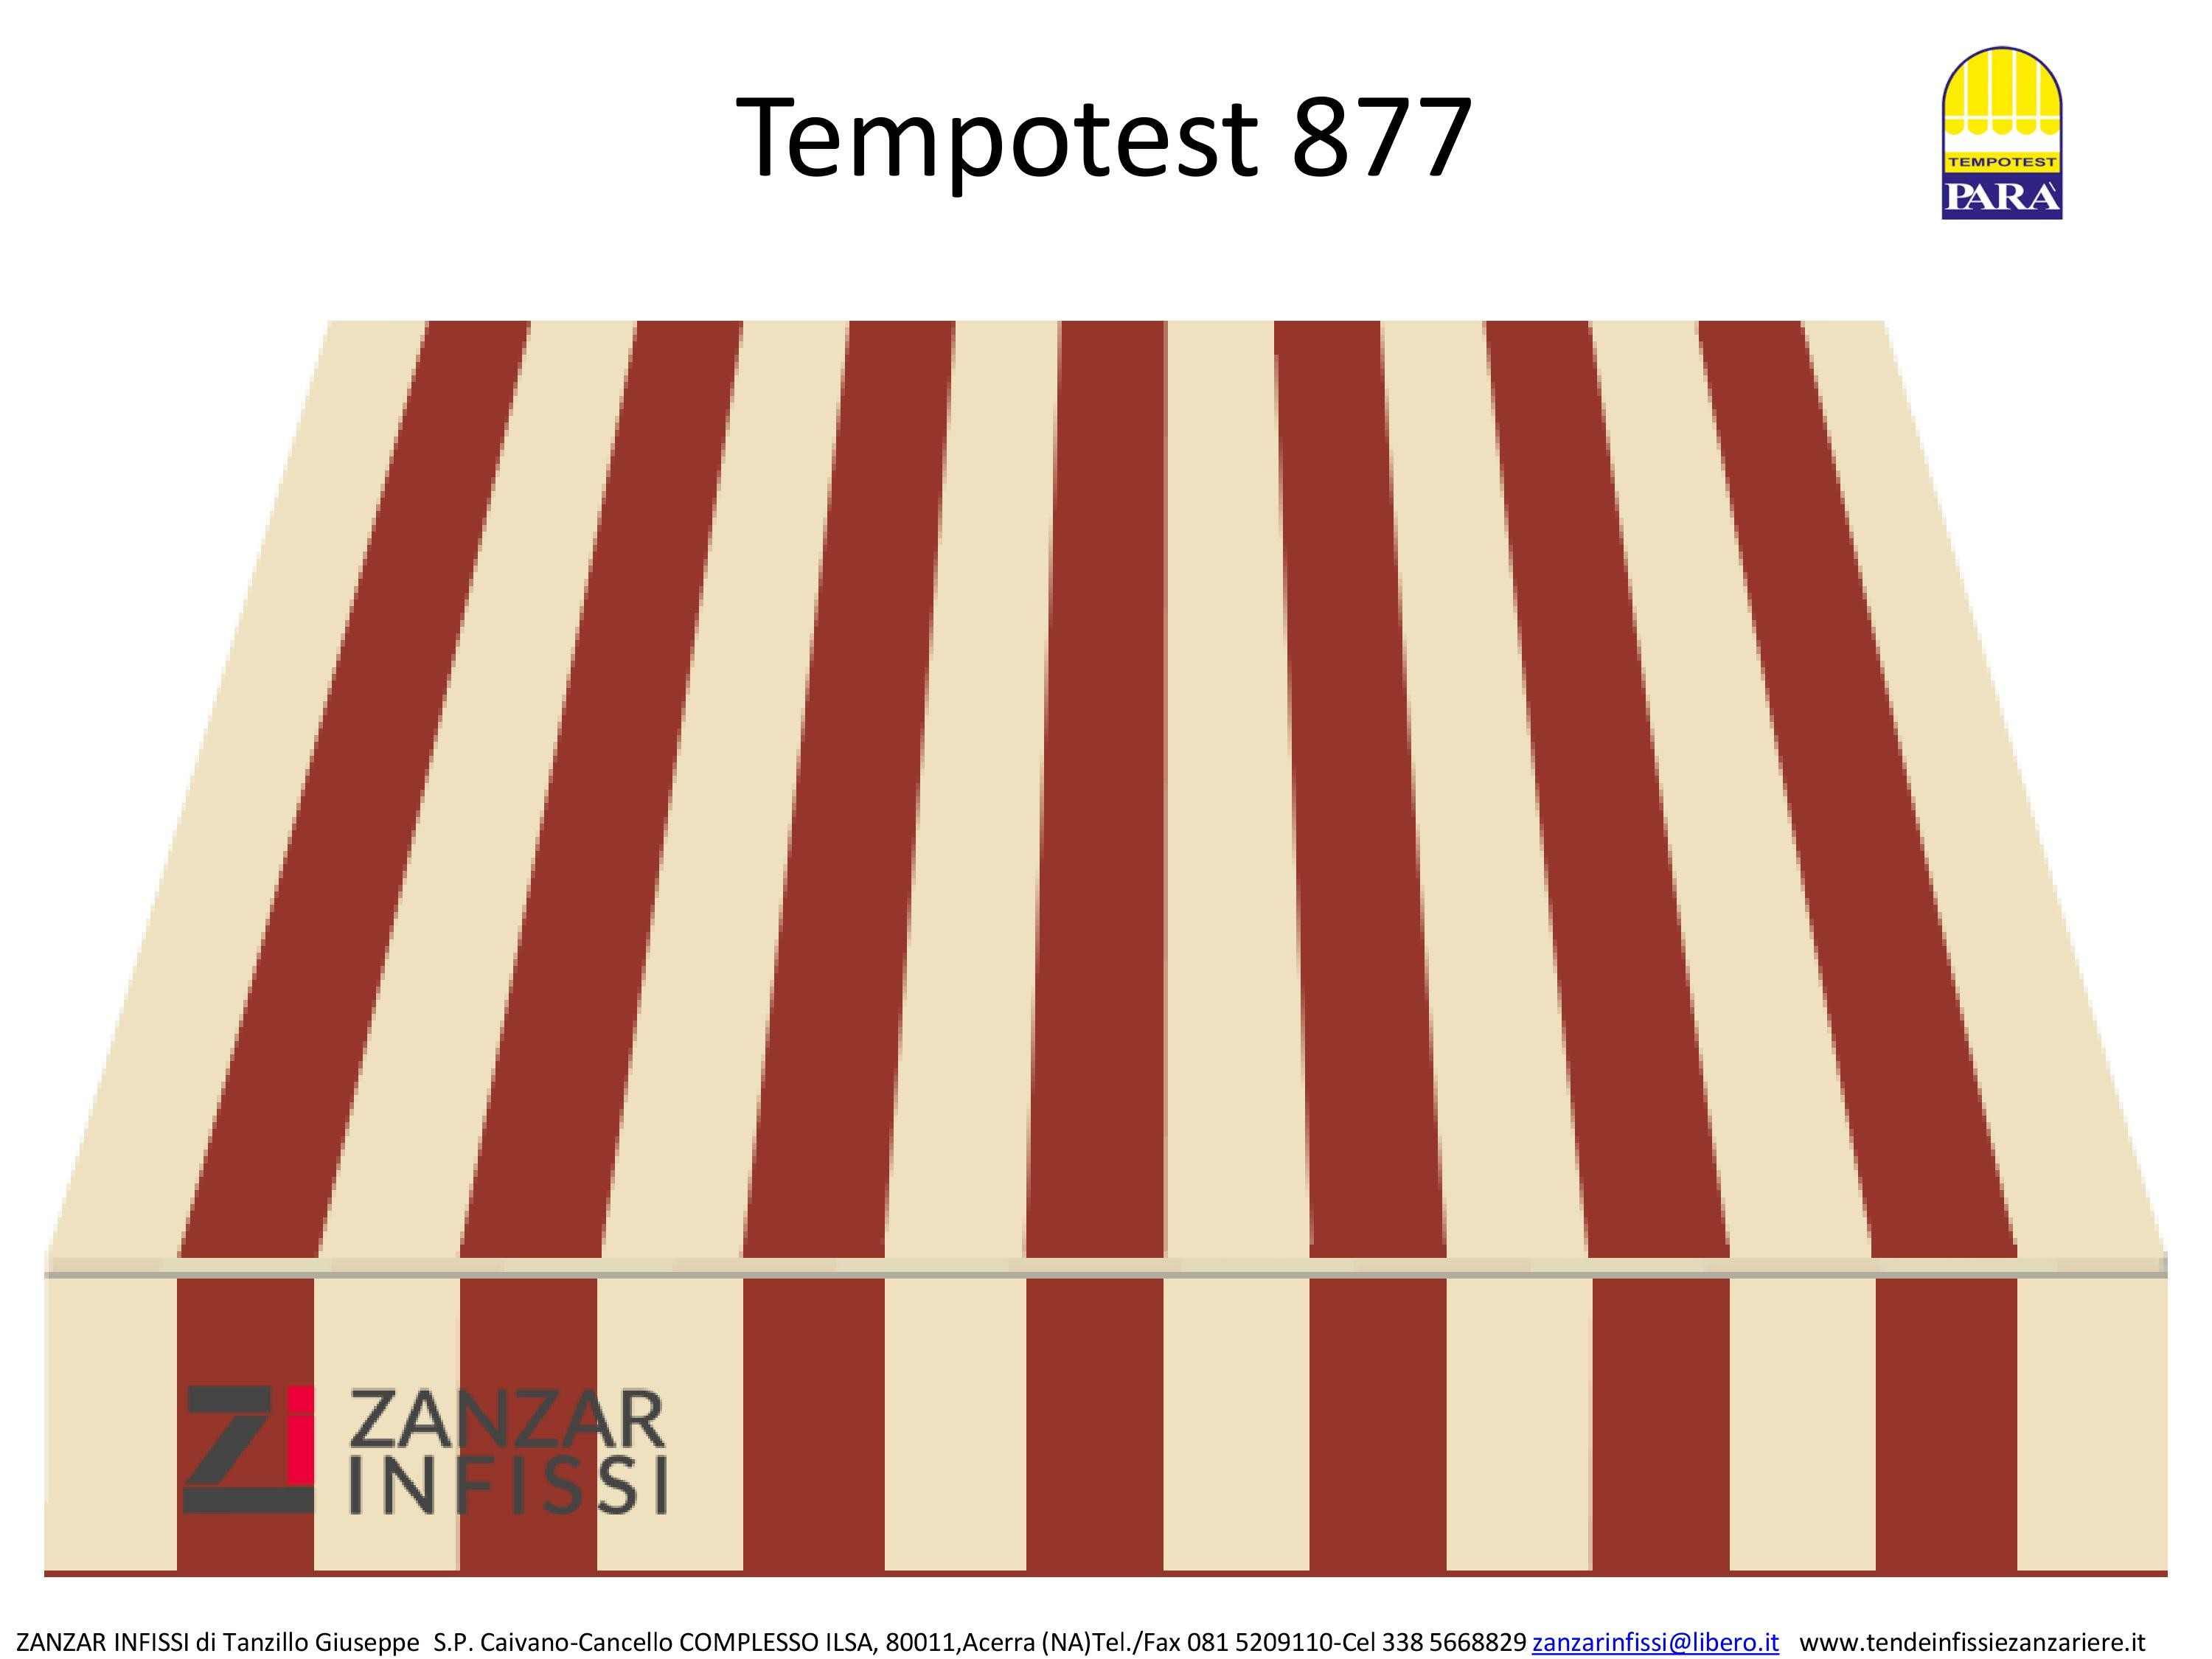 Tempotest 877